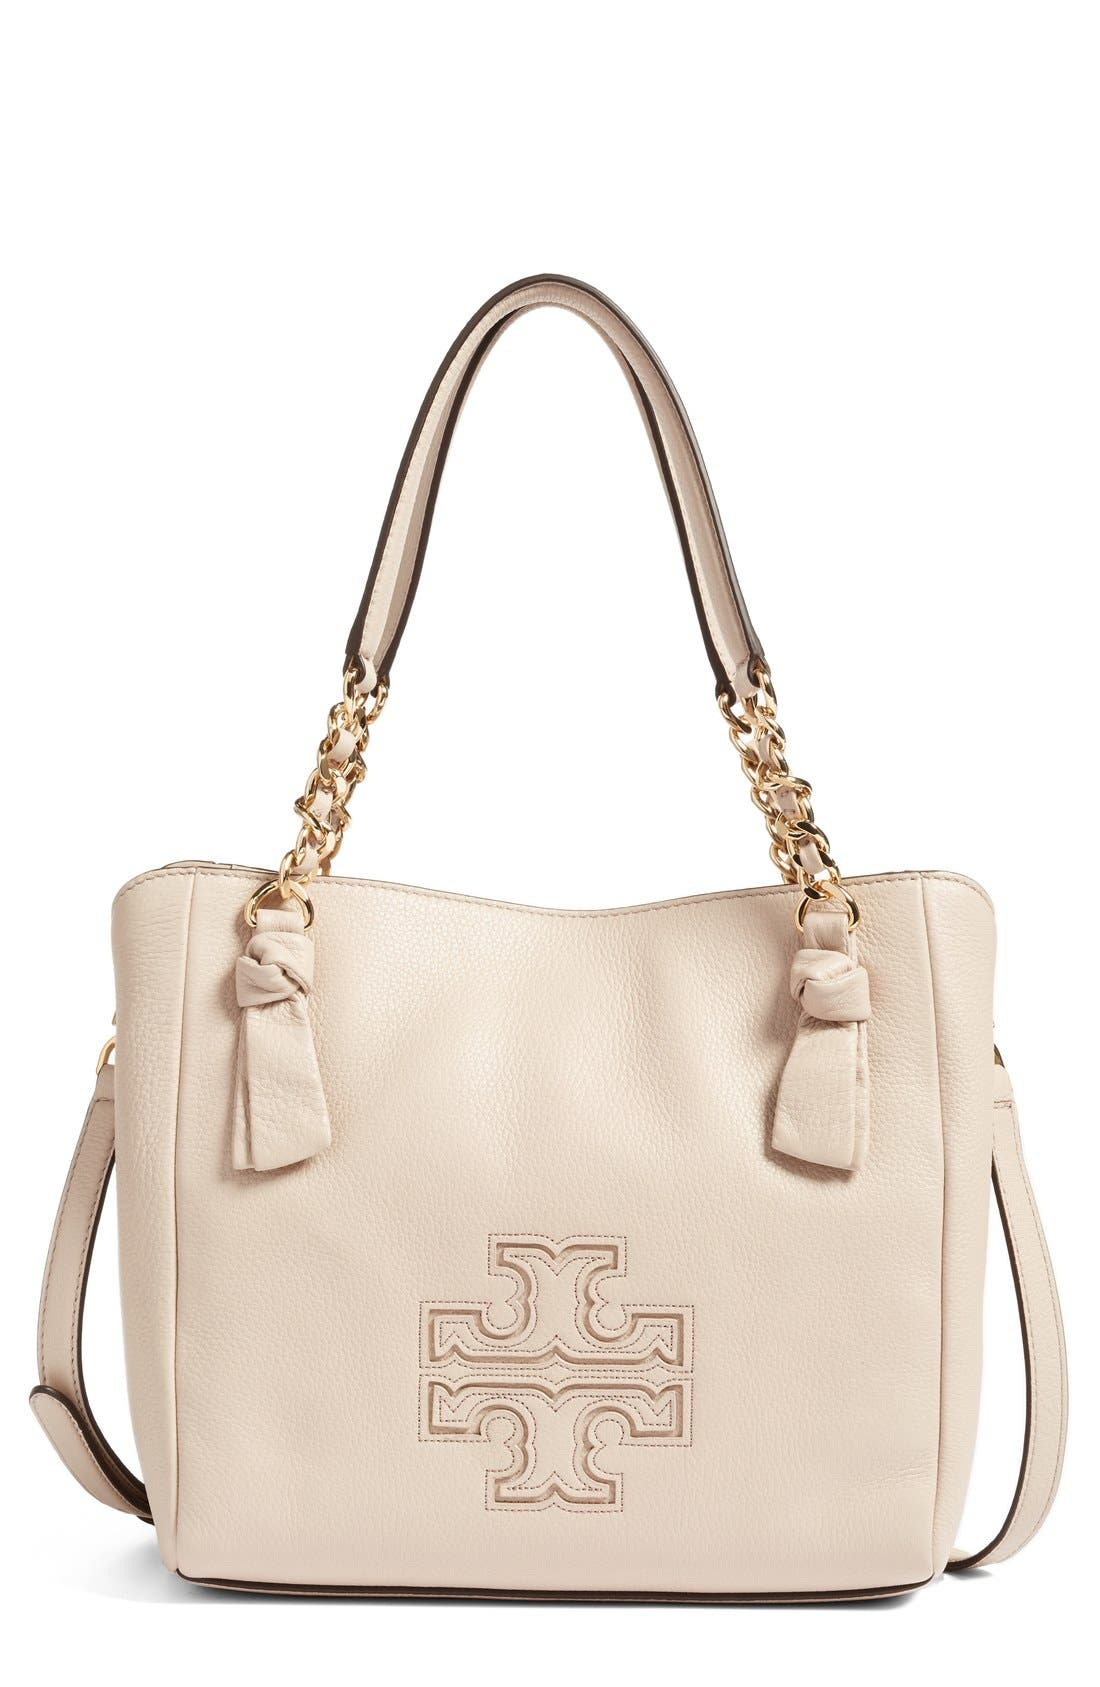 Alternate Image 1 Selected - Tory Burch Small Harper Leather Satchel